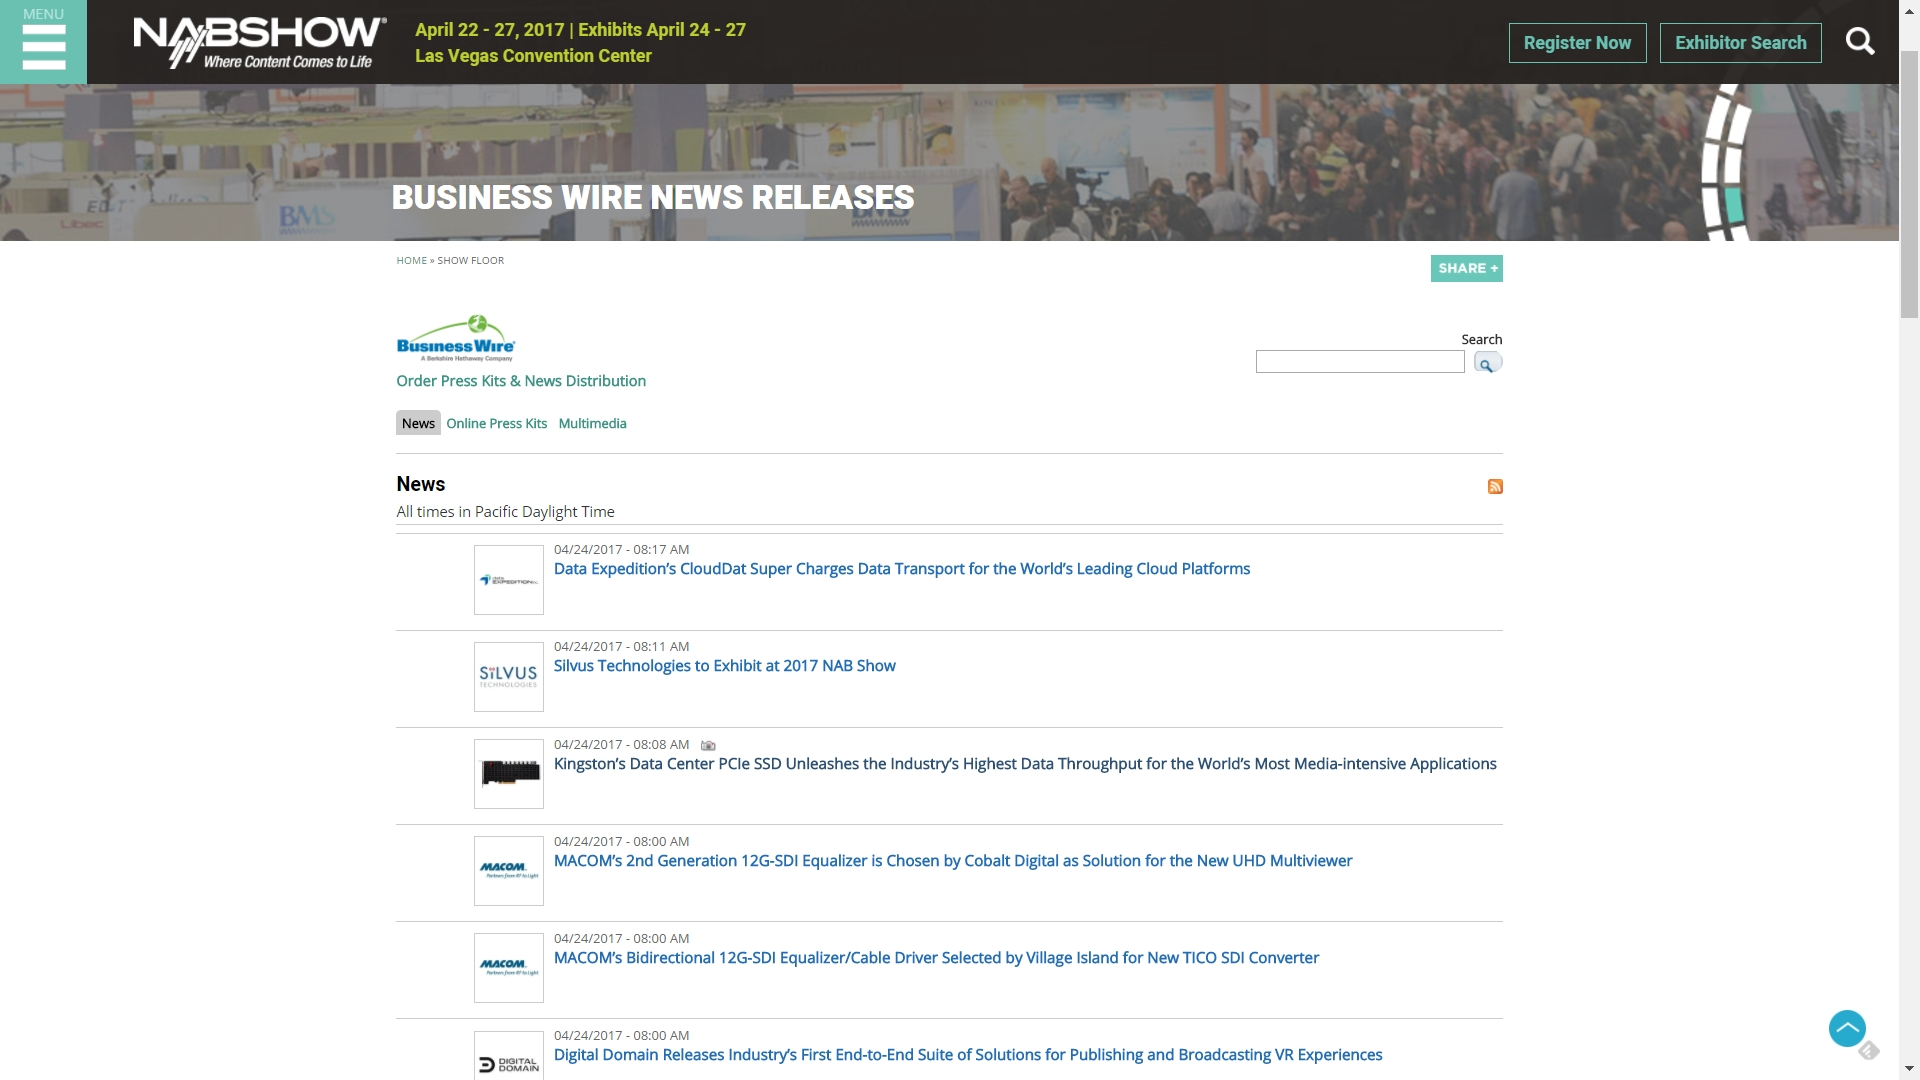 Business Wire will be making breaking exhibitor news releases available through an exhibitor news archive on the 2017 NAB Show site. (Graphic: Business Wire)